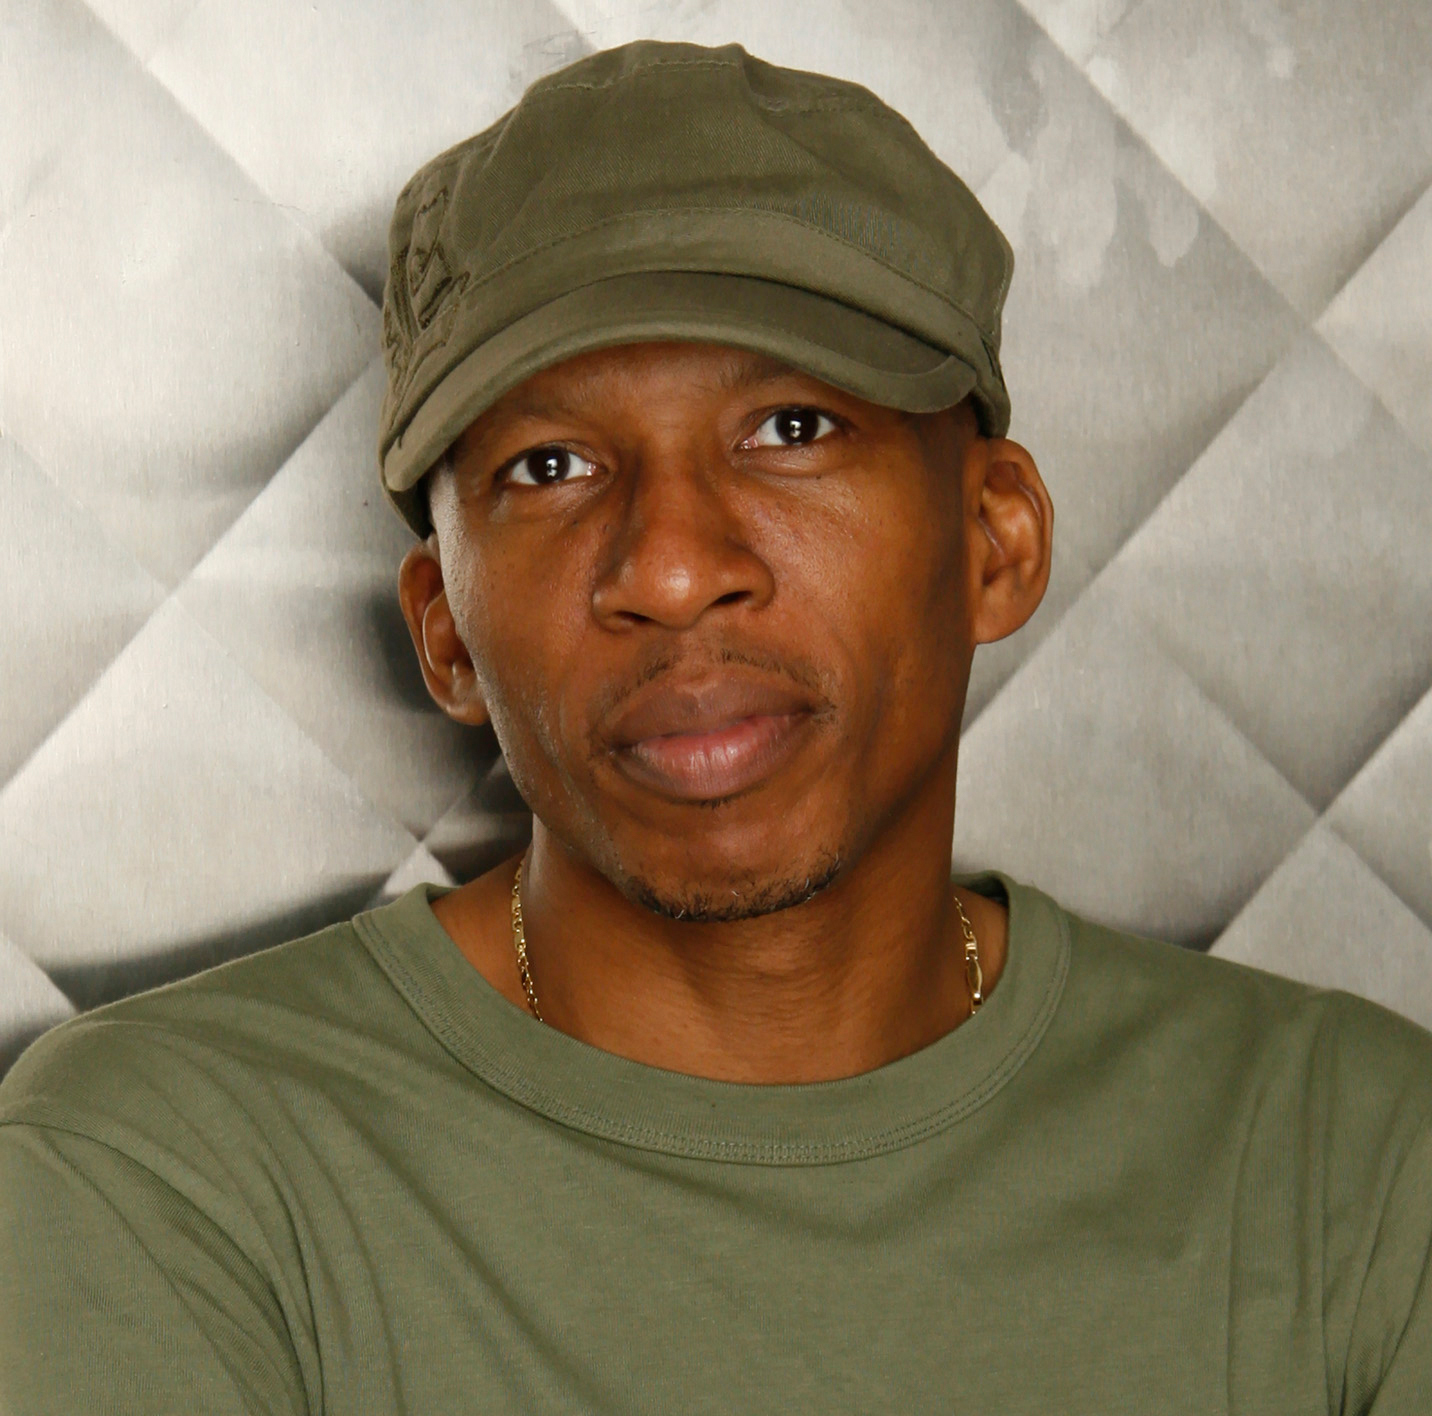 Interview: Hank Shocklee (The Bomb Squad)